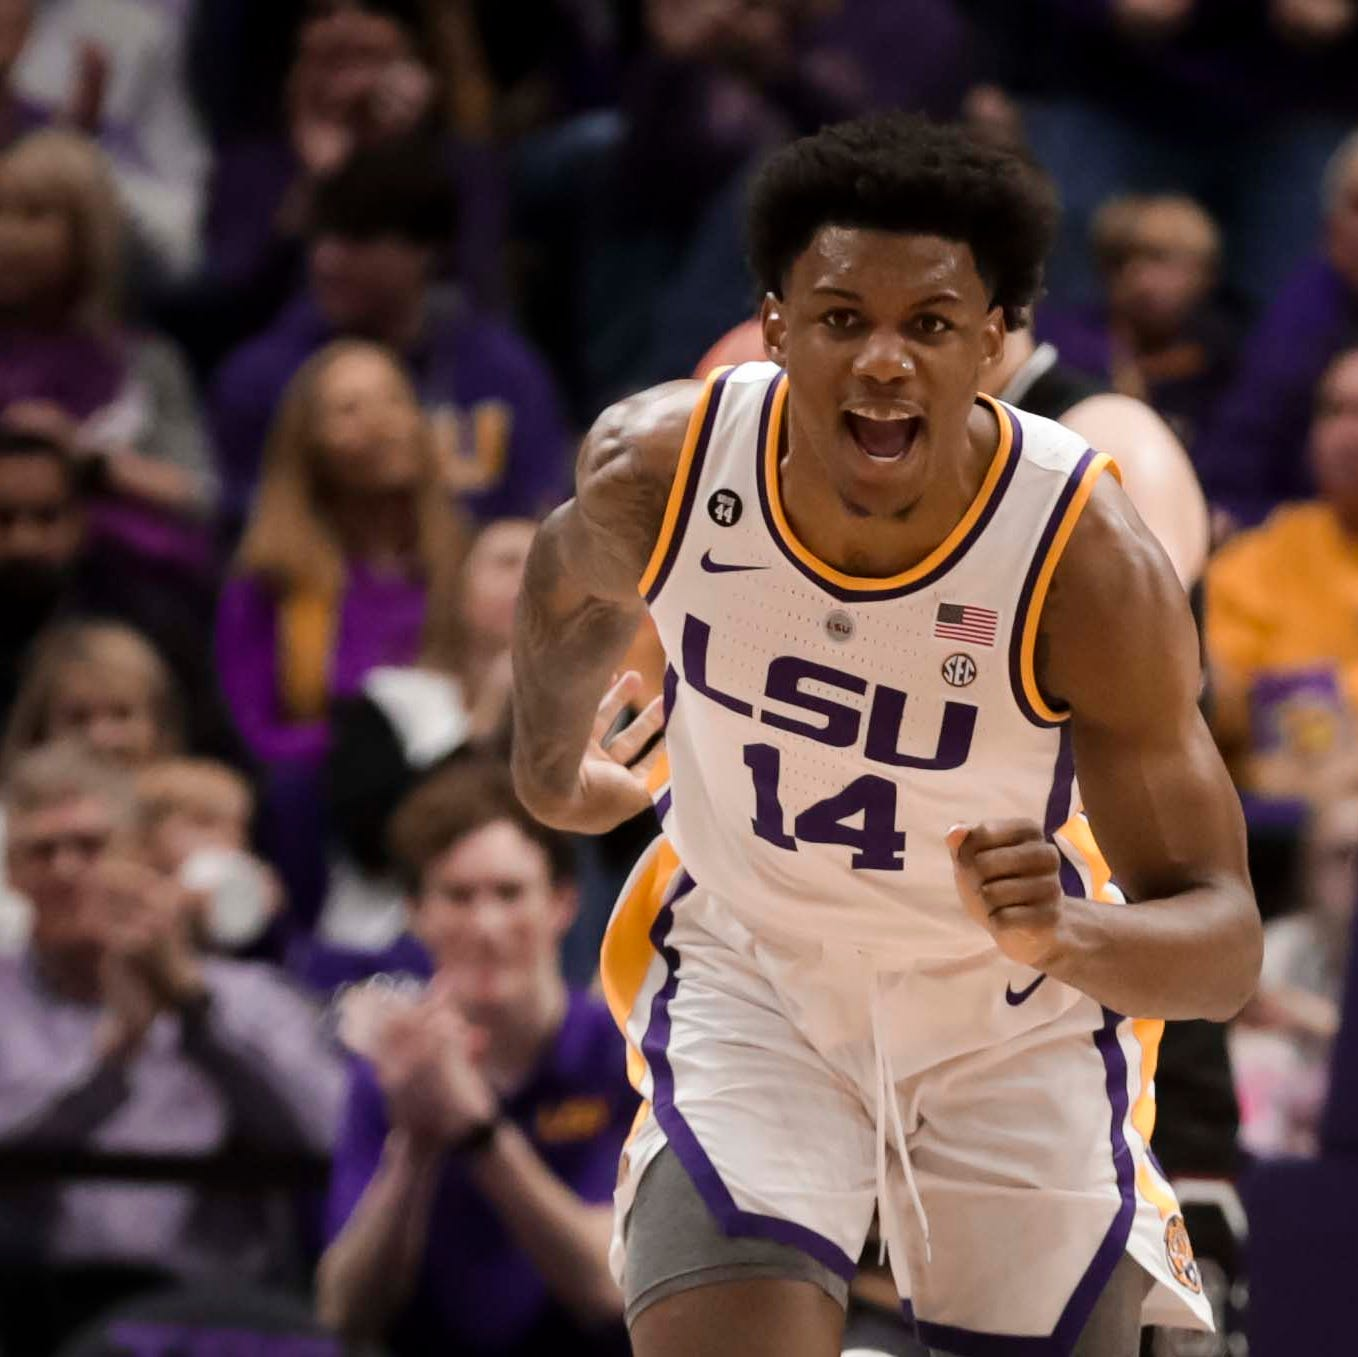 LSU routs South Carolina to extend winning streak to 7 games